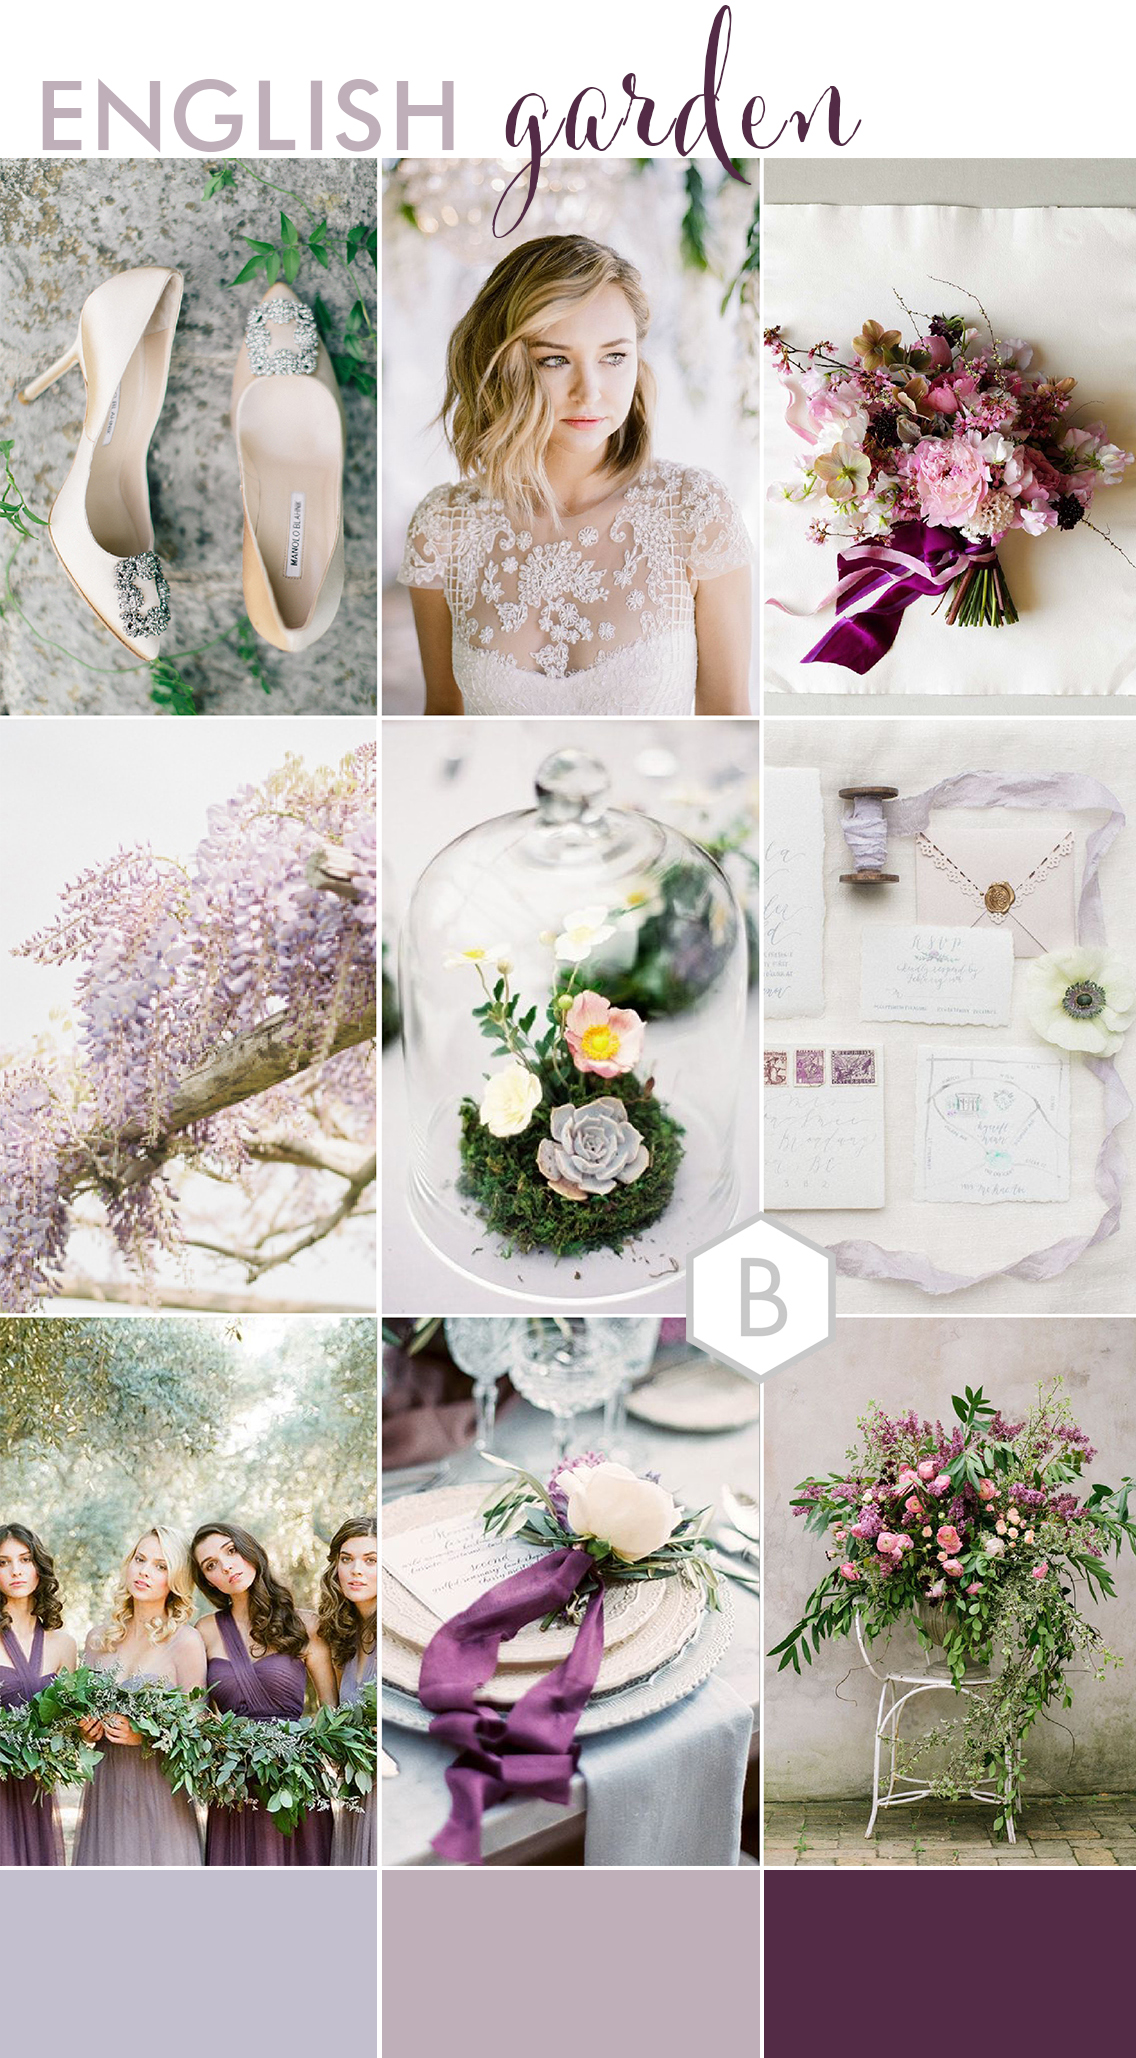 bloved-wedding-blog-english-garden-wedding-inspiration